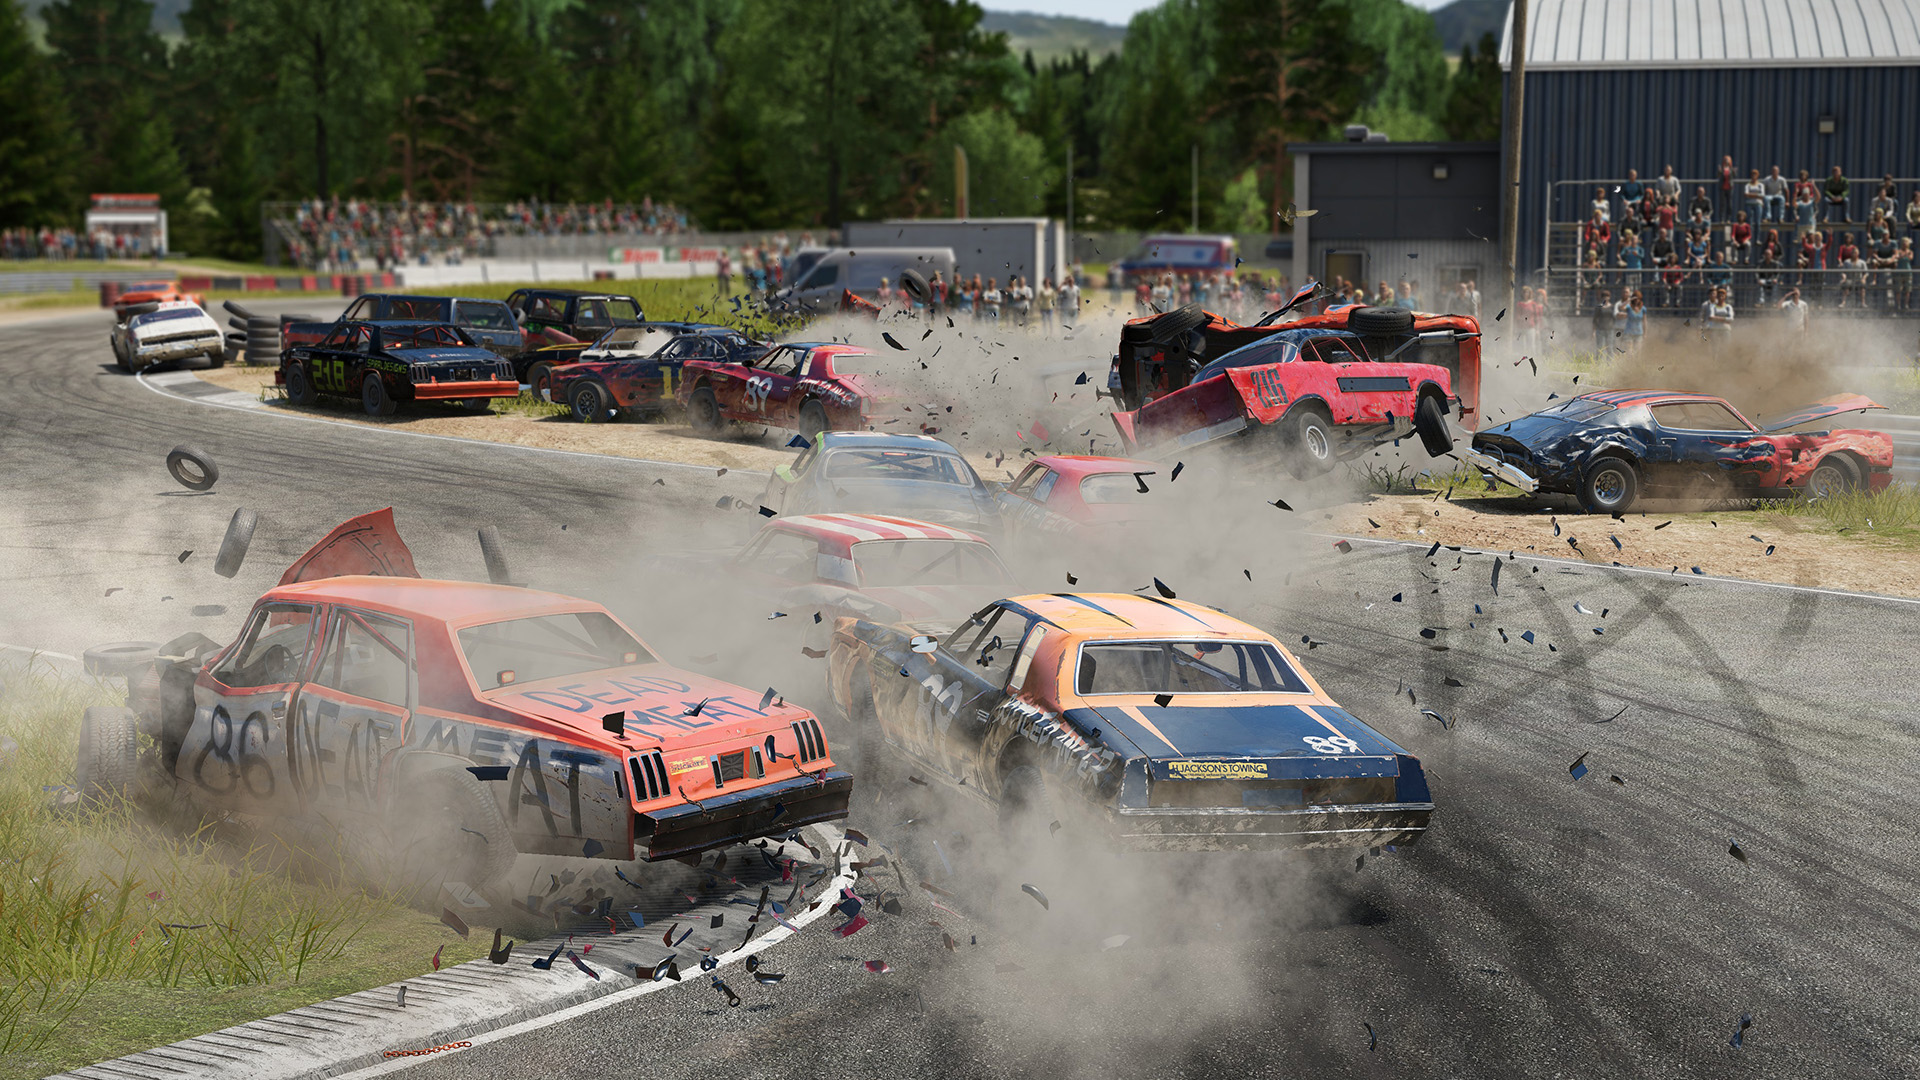 Games Like Forza Horizon 4 - Top 10 Alternatives To Check Out